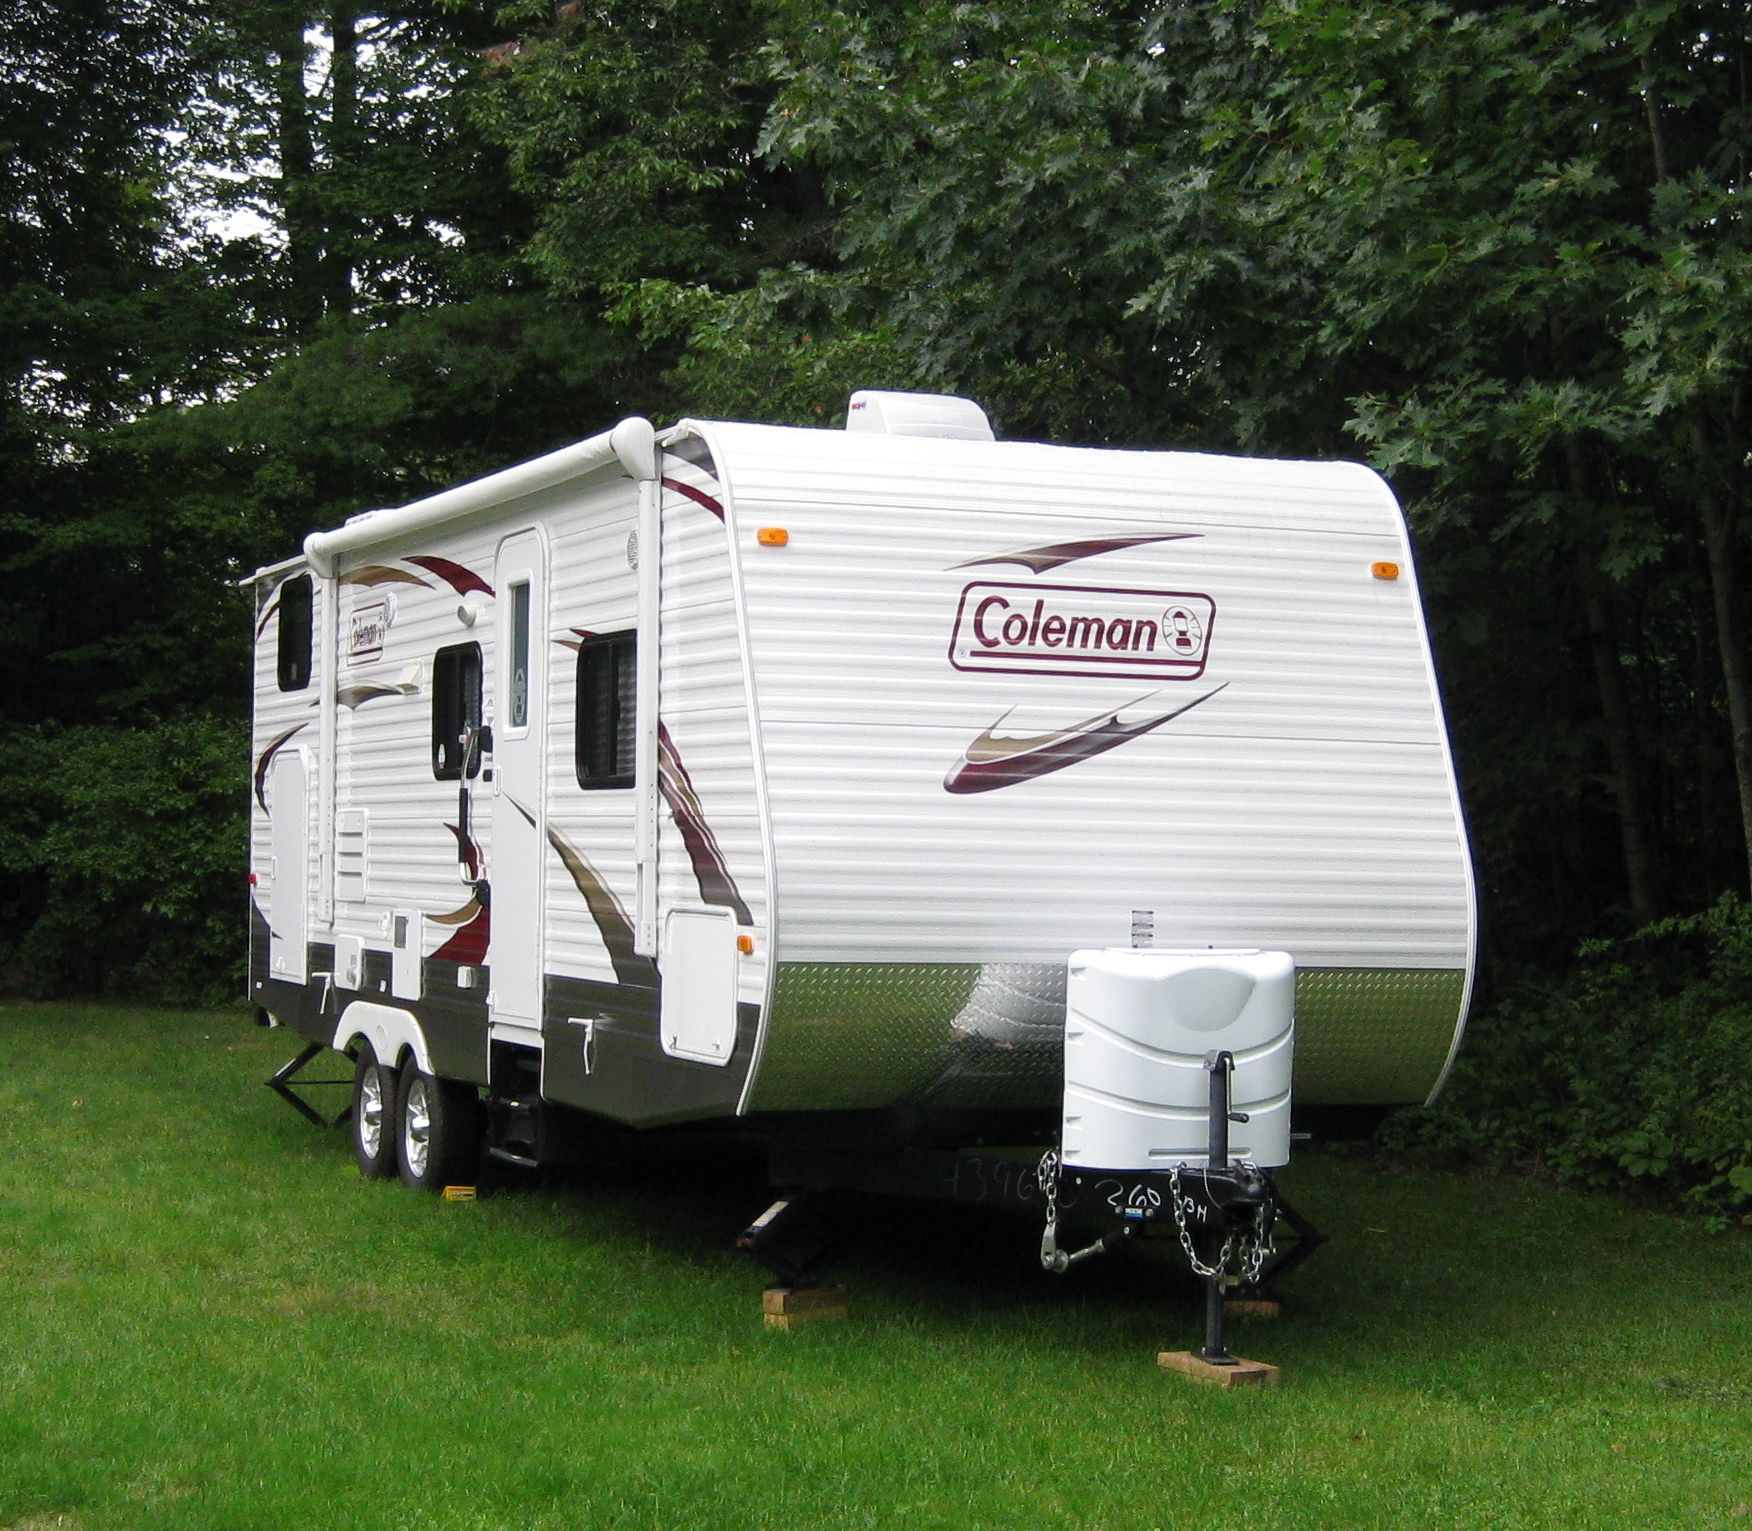 Travel Trailers With Outdoor Kitchens: Coleman Travel Trailer Model CT260